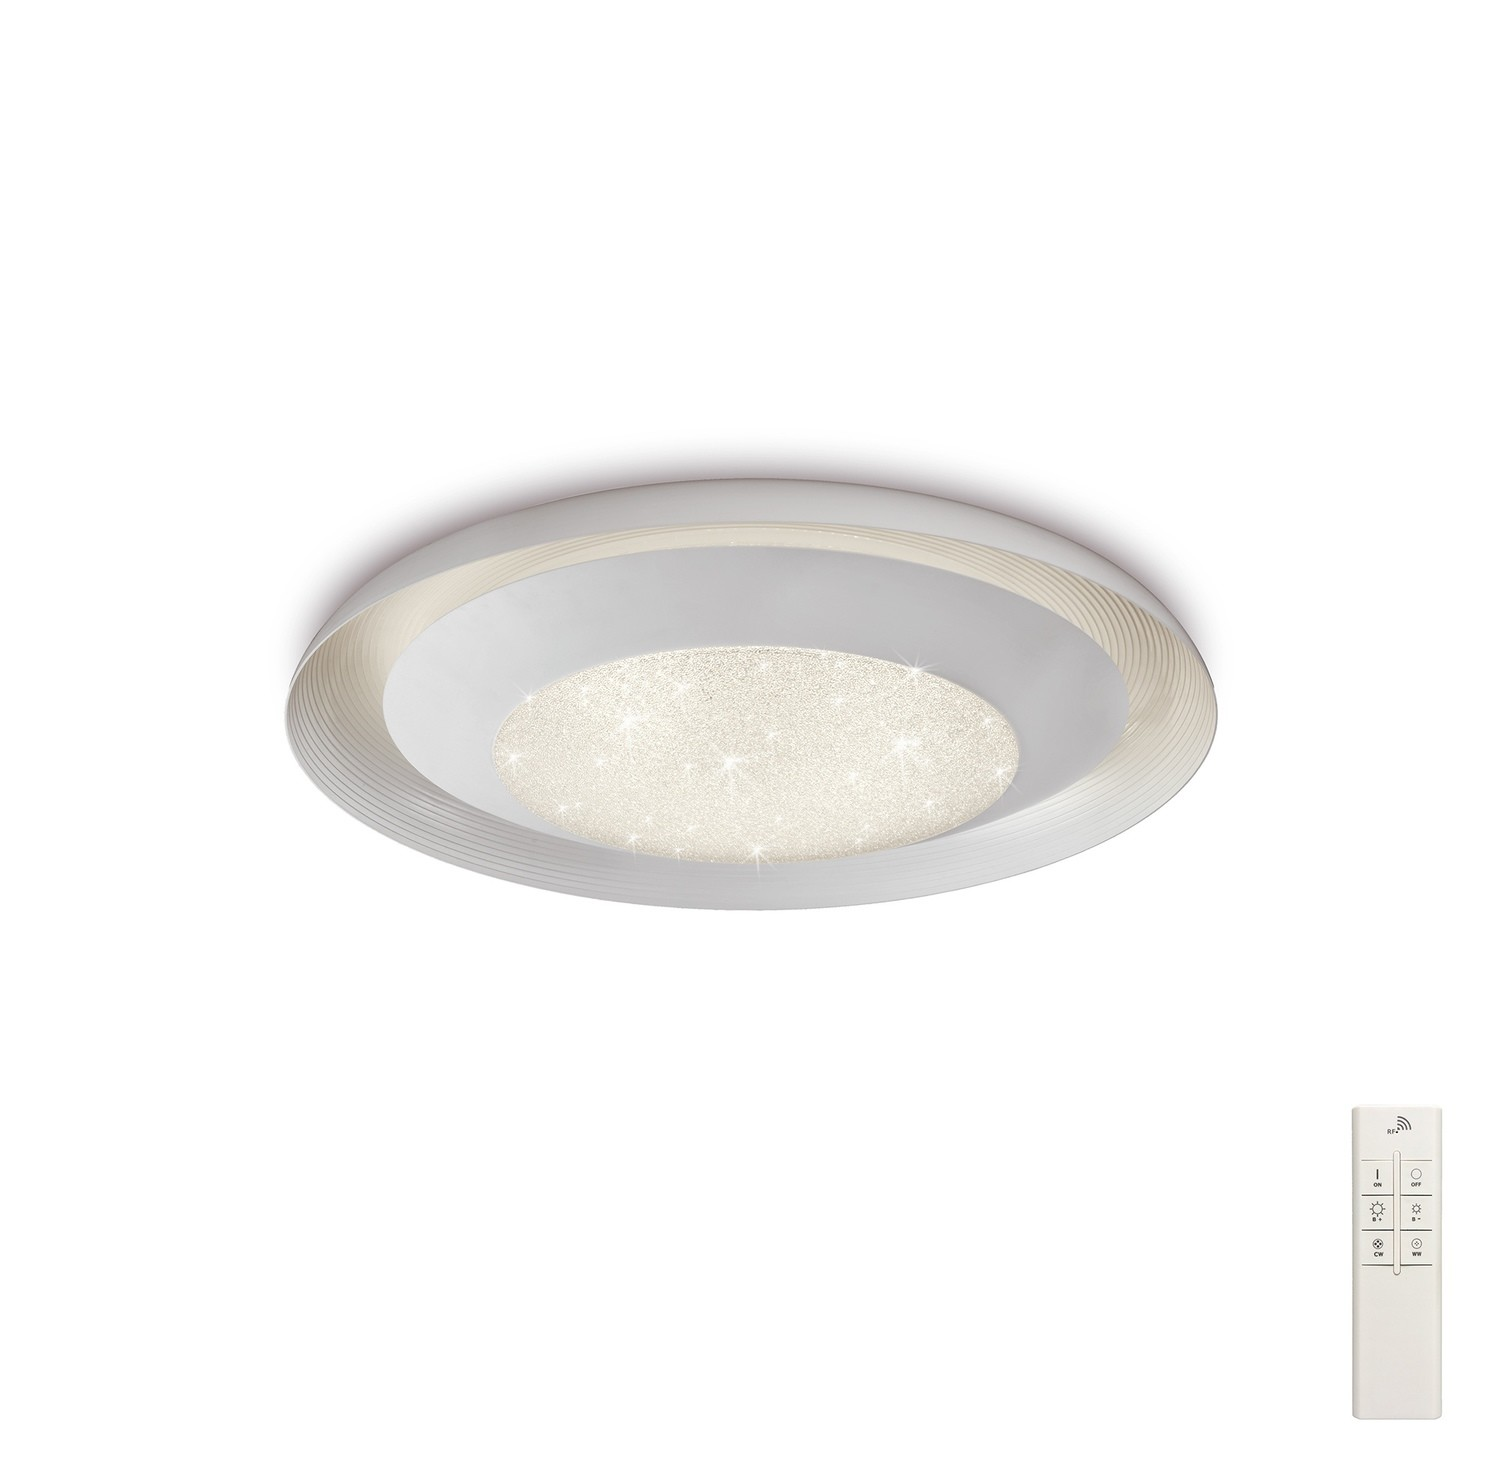 Ari Flush 49.5cm Round 24W LED 3000-6500K Tuneable, 1920lm, Remote Control White